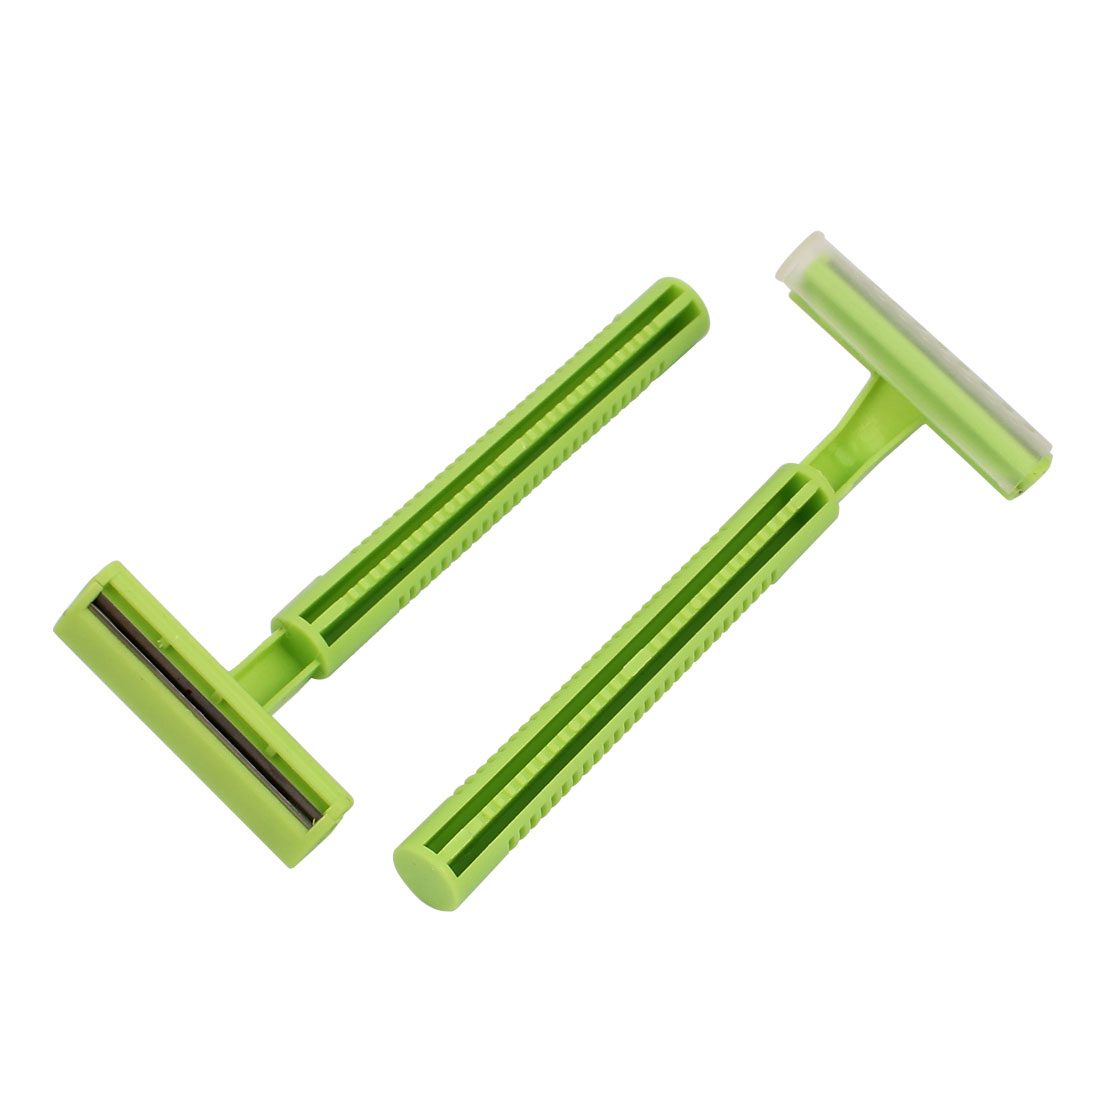 Lady Plastic Shell T Shaped Body Hair Razor Shaver Trimmer Remover Green 2 Pcs